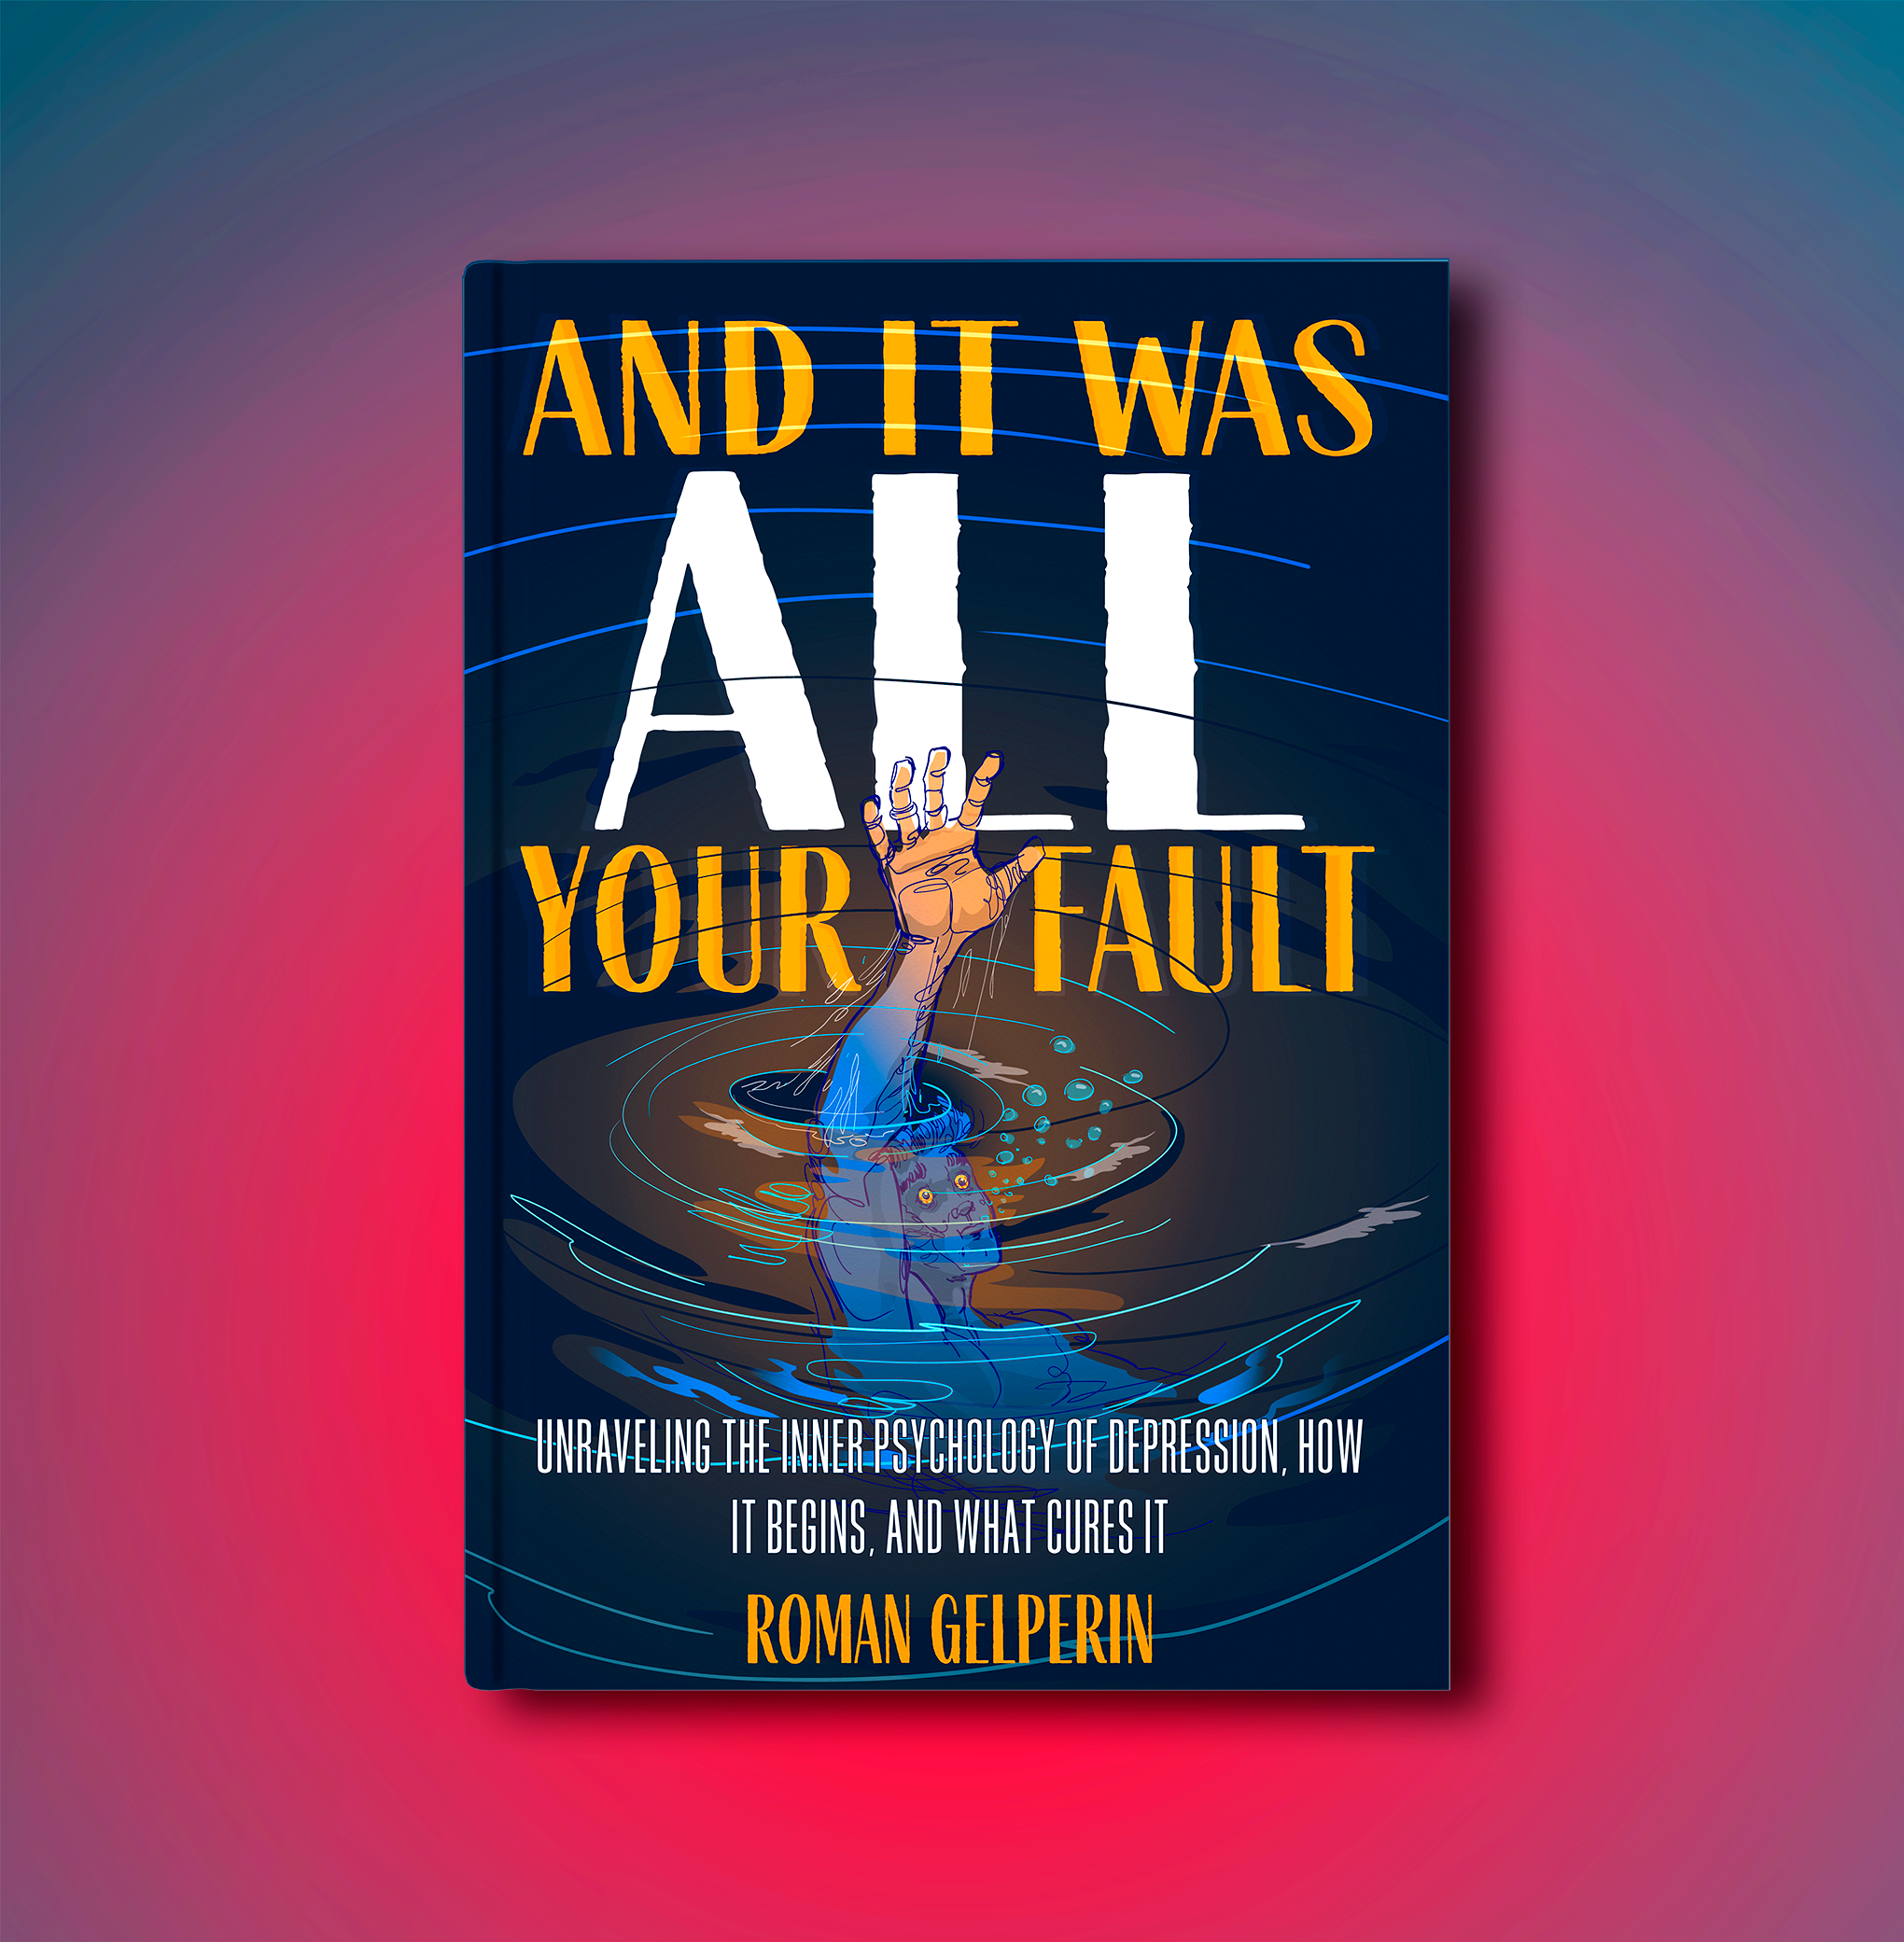 And it was all your fault book cover fon